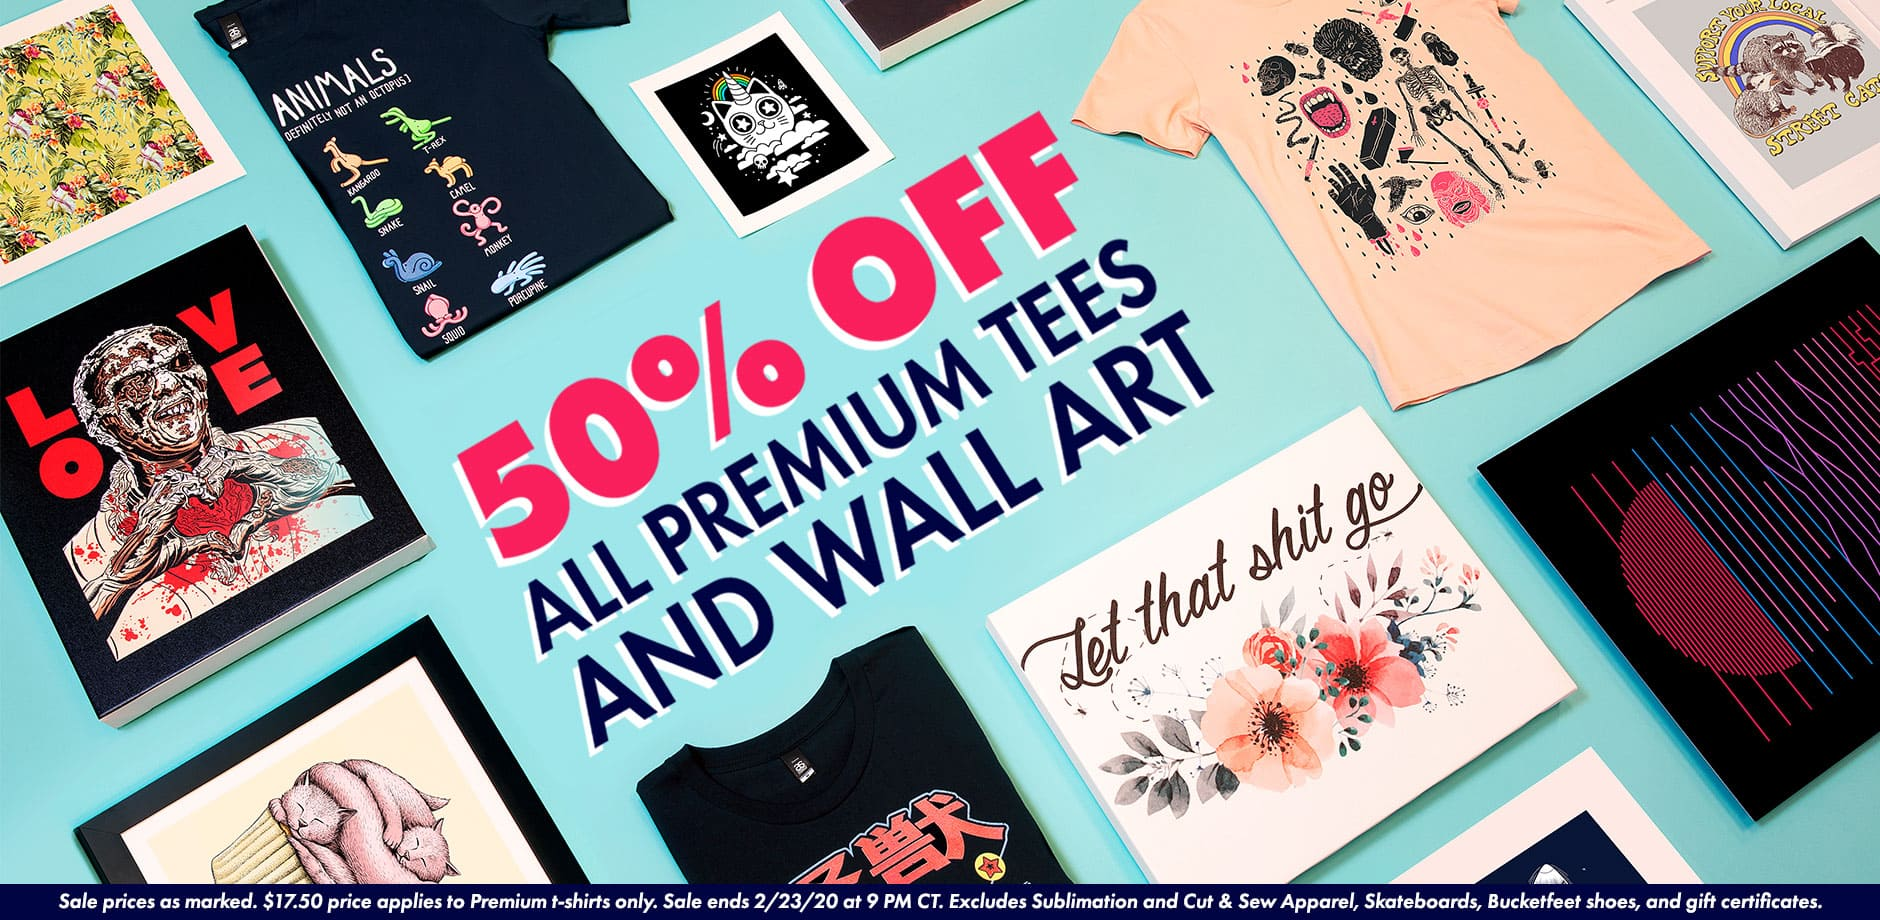 Shop 50% off Premium Tees and All Wall Art in the Threadless Marketplace